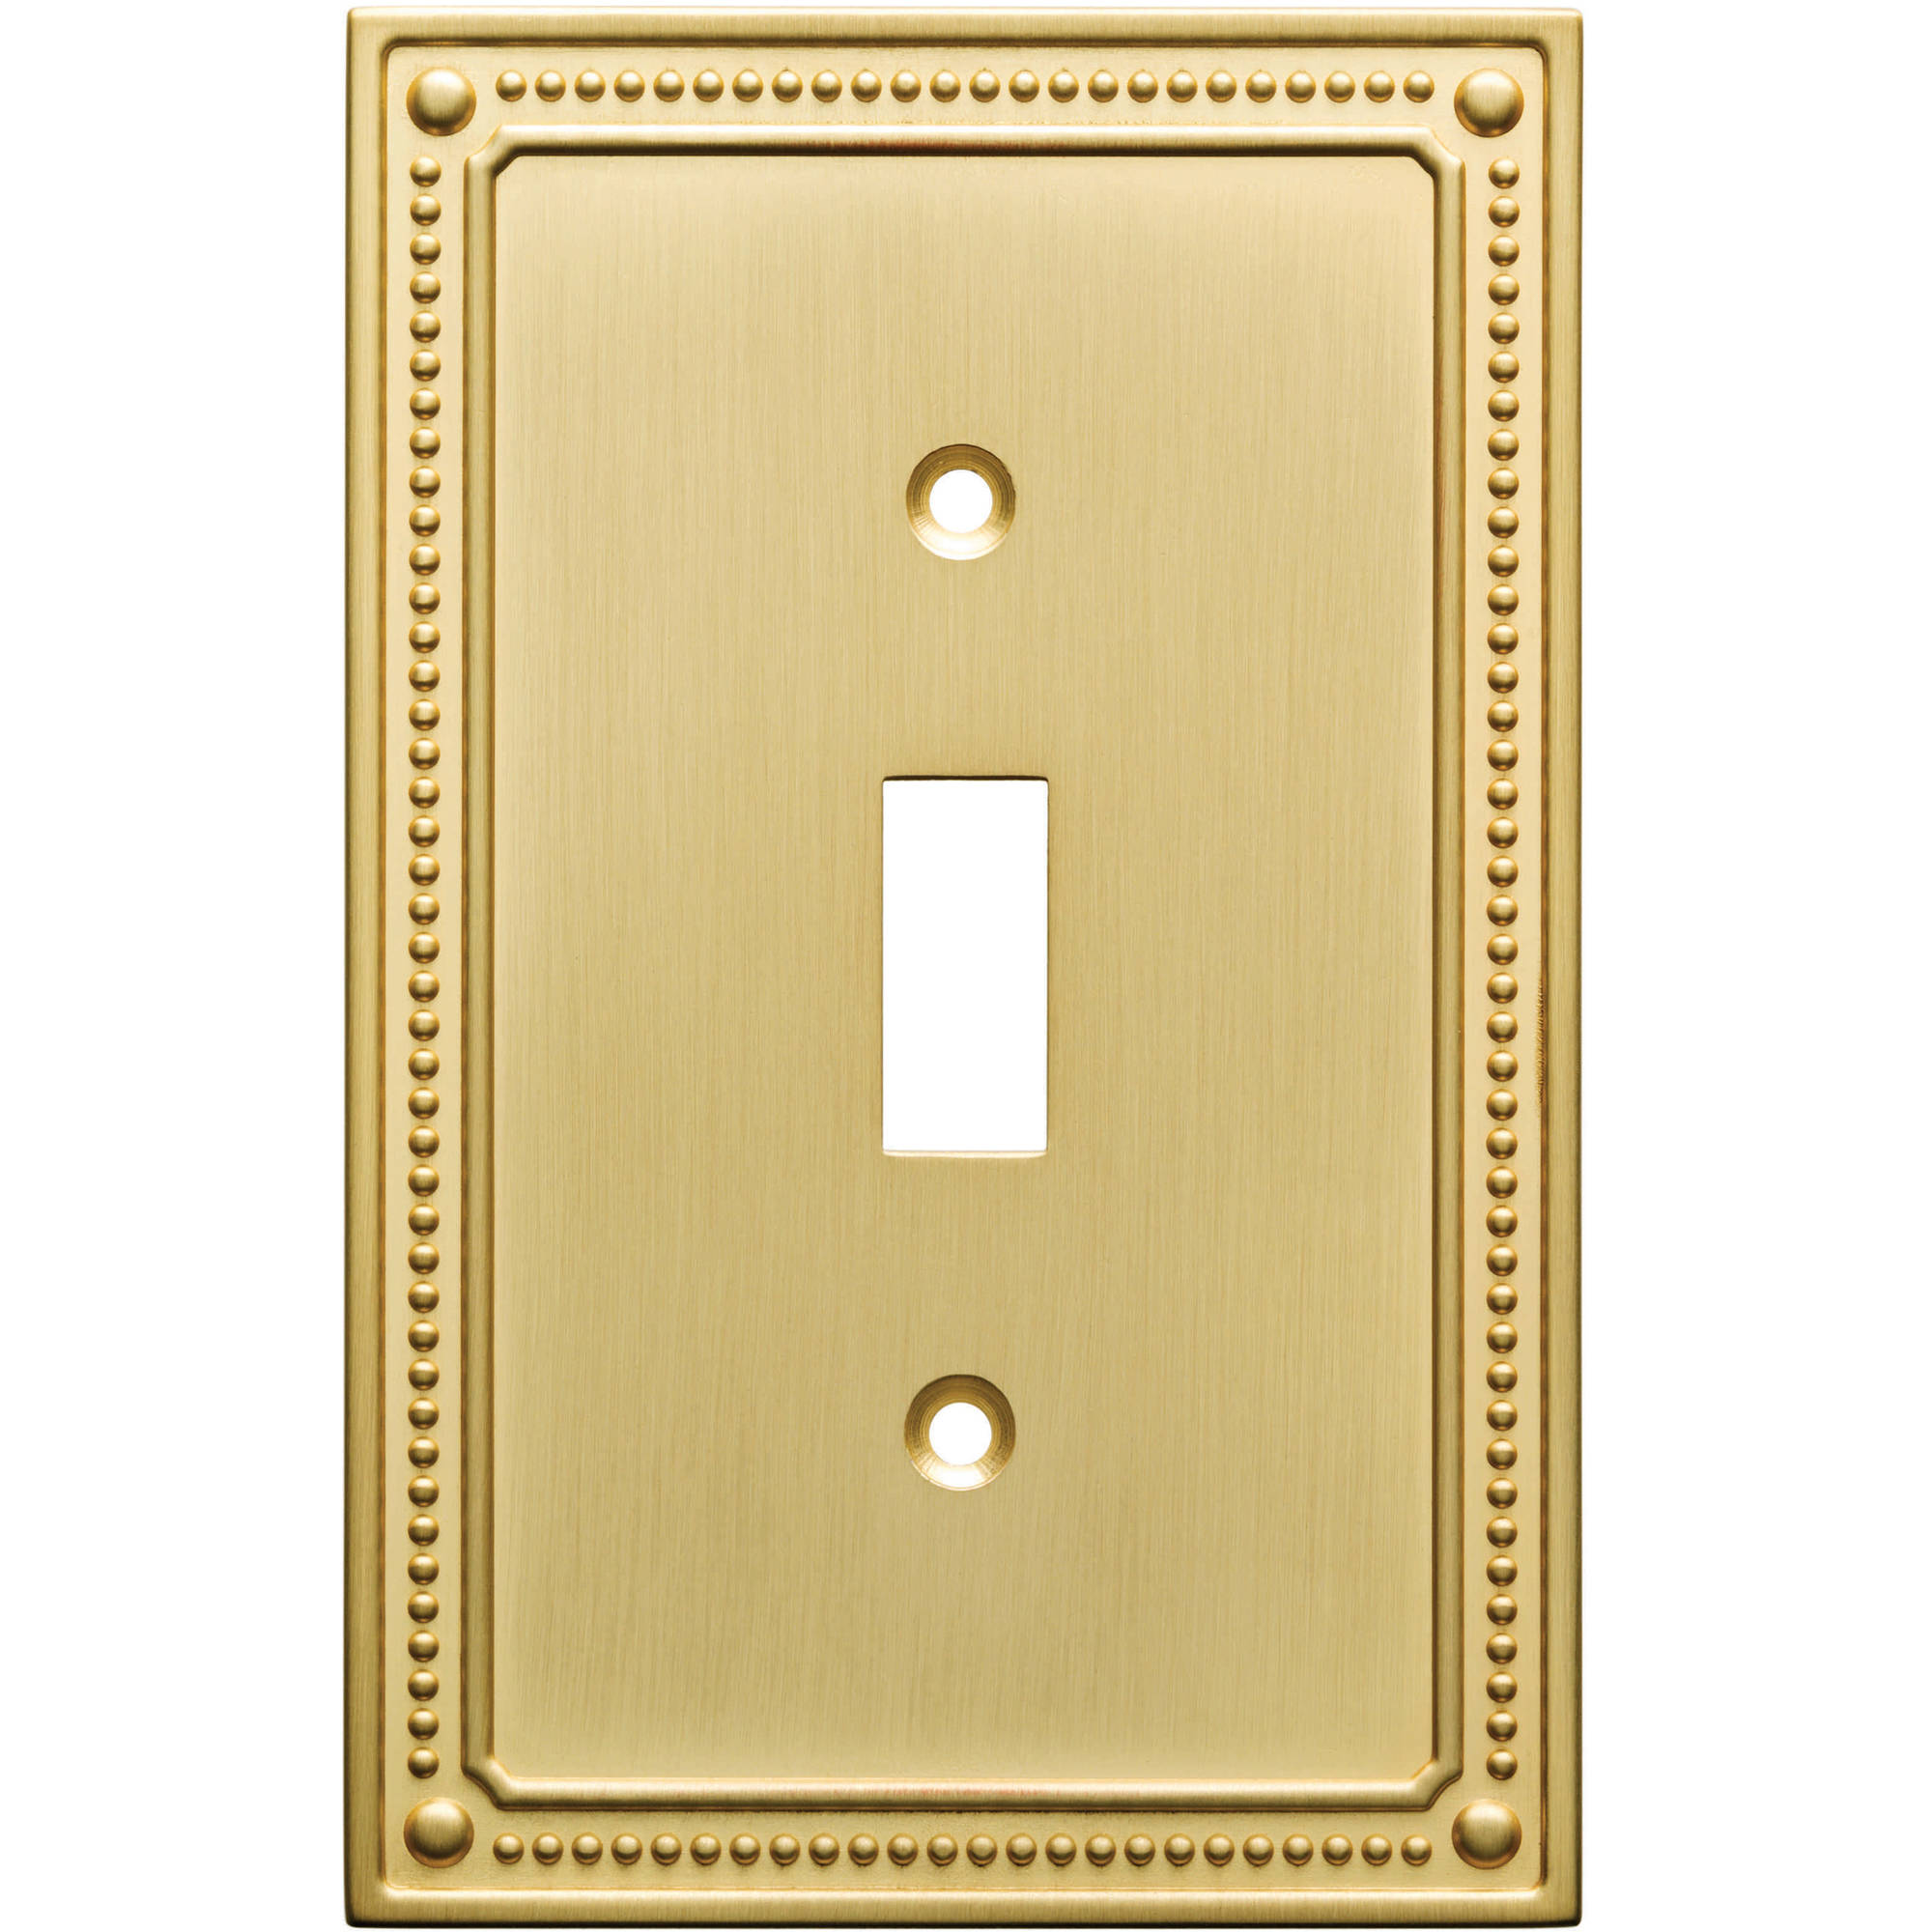 Franklin Brass Classic Beaded Single Switch Wall Plate in Brushed Brass